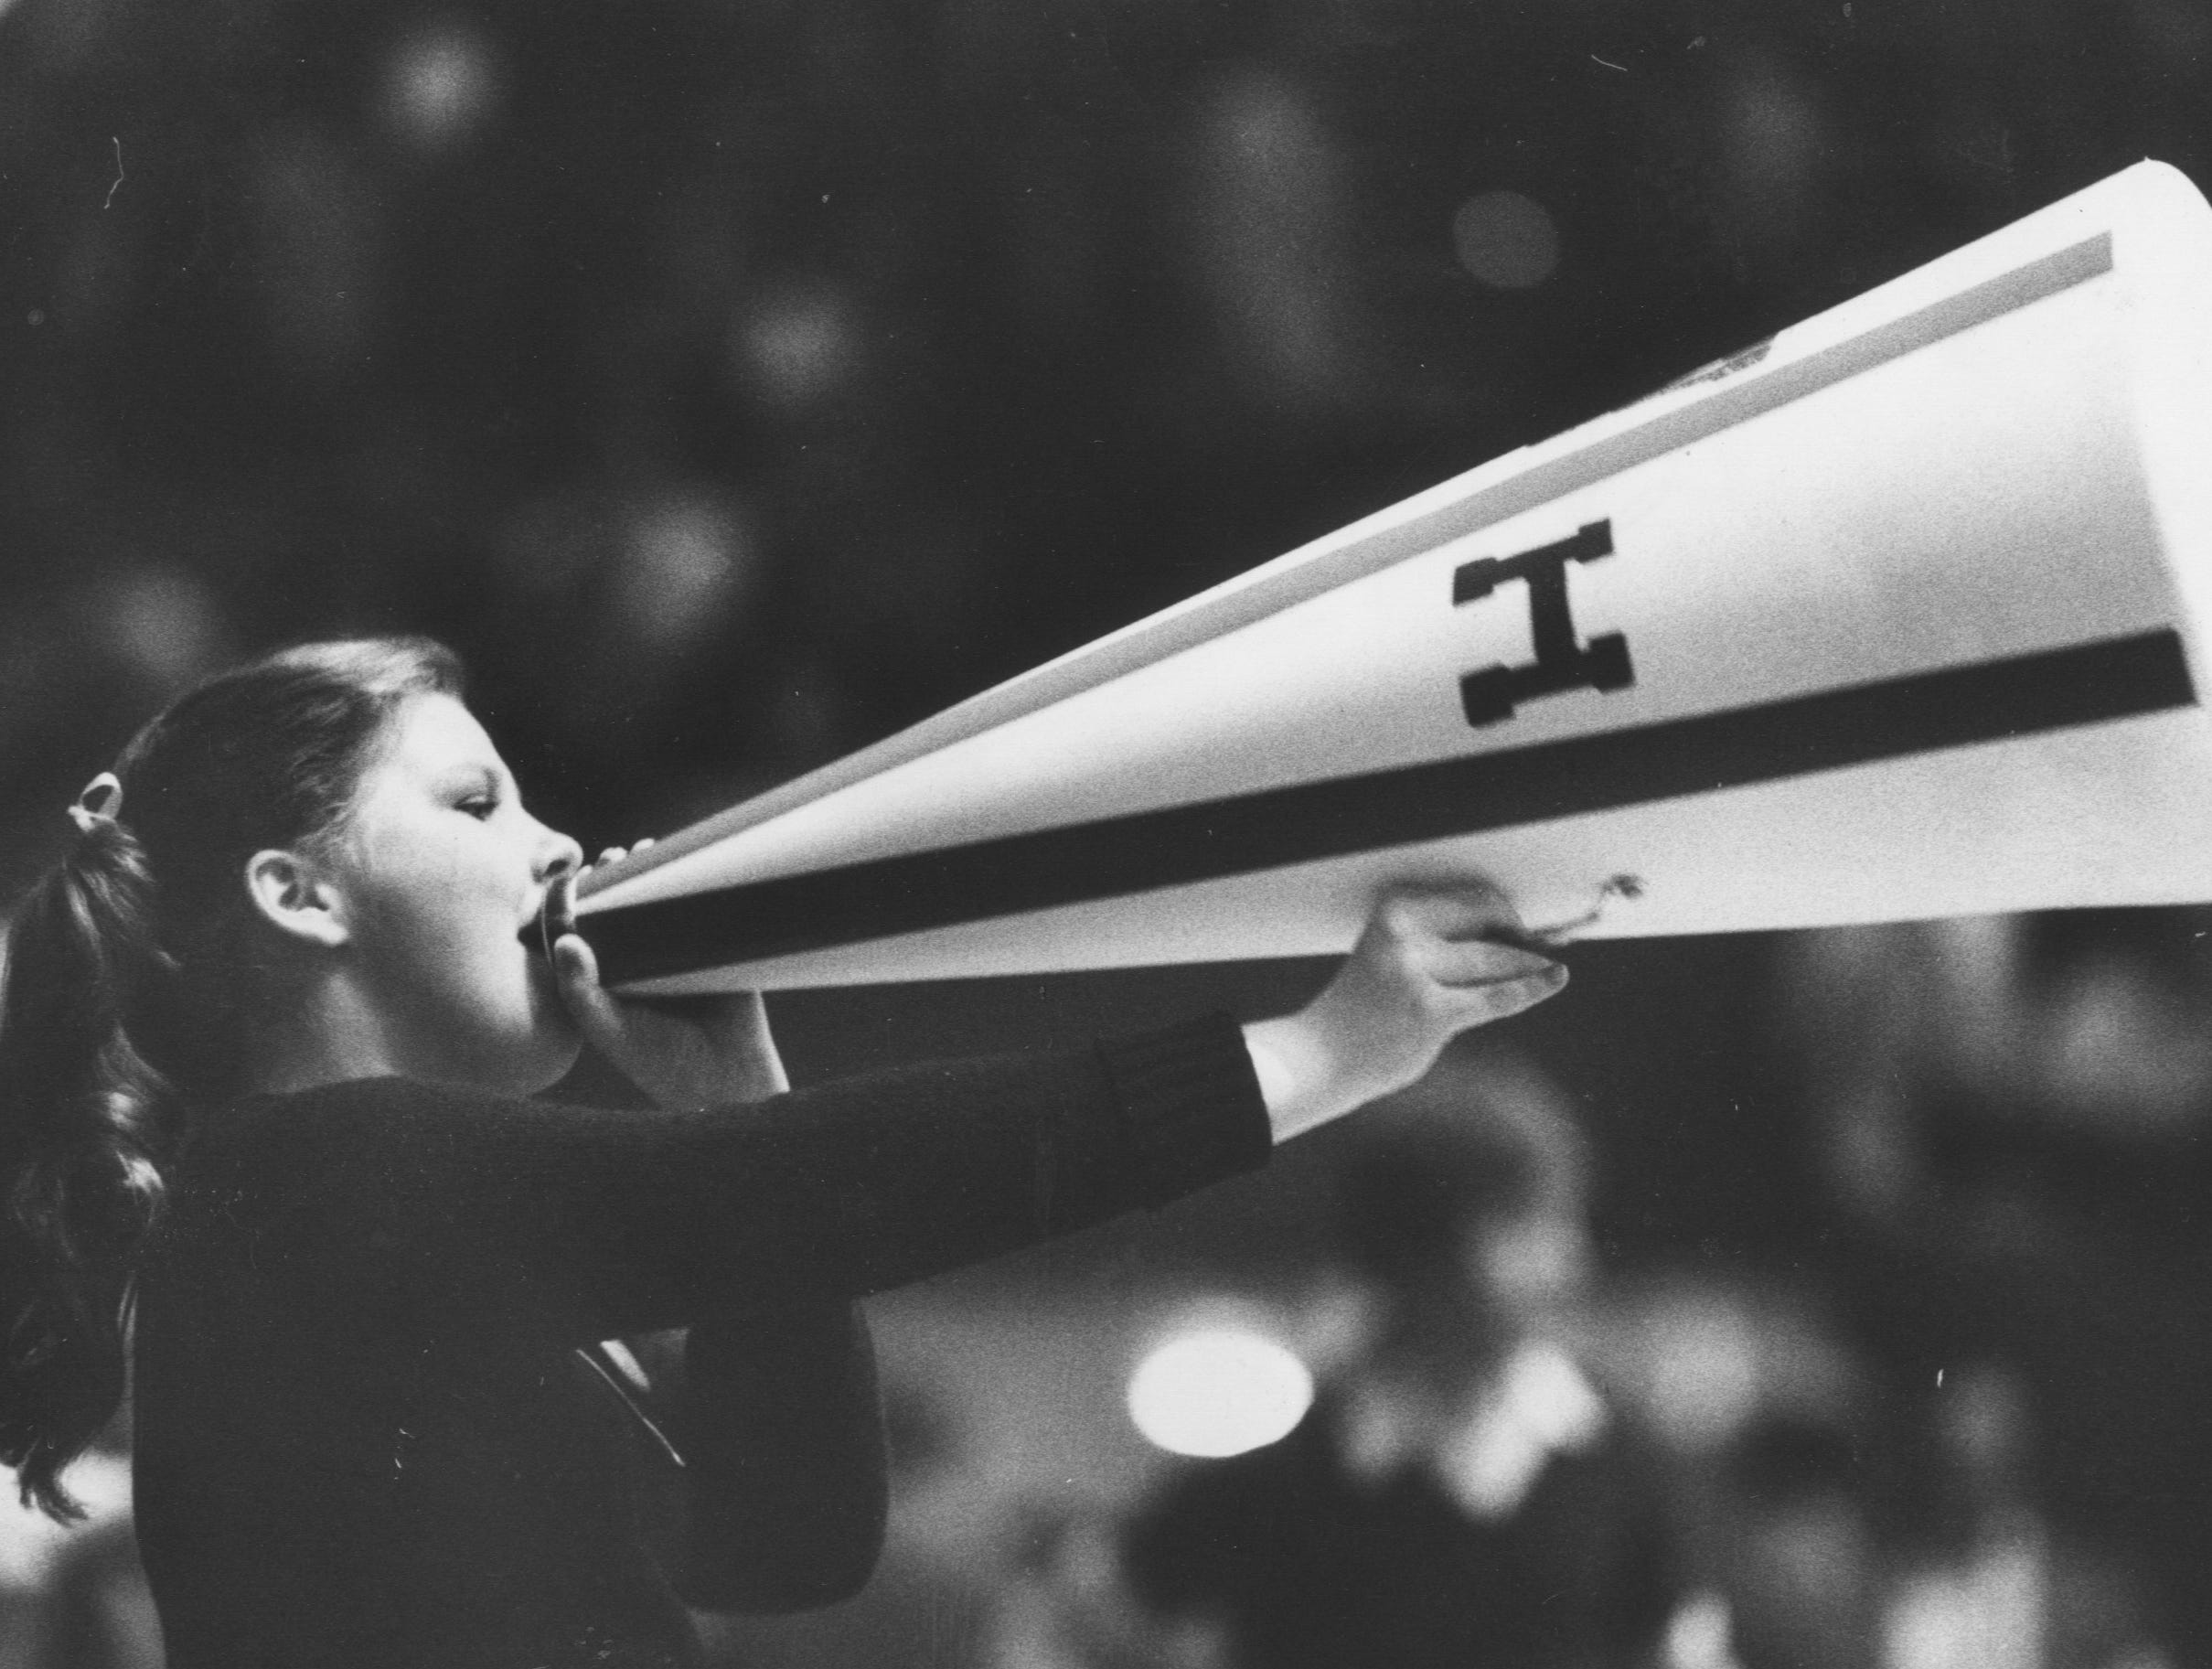 Donna Grace led cheers with a megaphone during the Sweet Sixteen game against Owensboro. Mar. 29, 1980